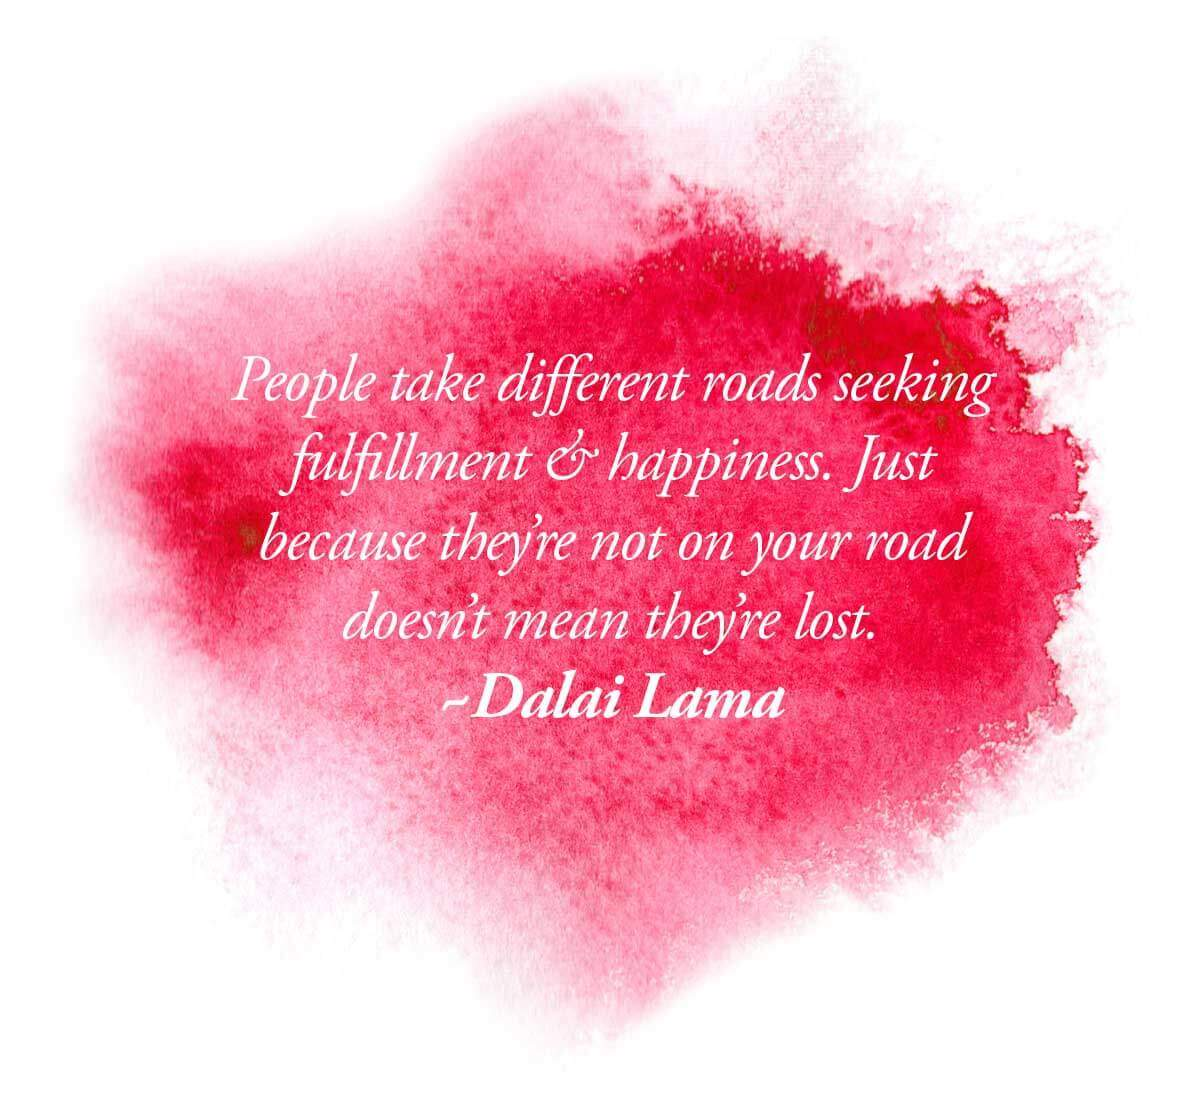 <b>What path are you on?</b> What do you think of others that are on different roads?